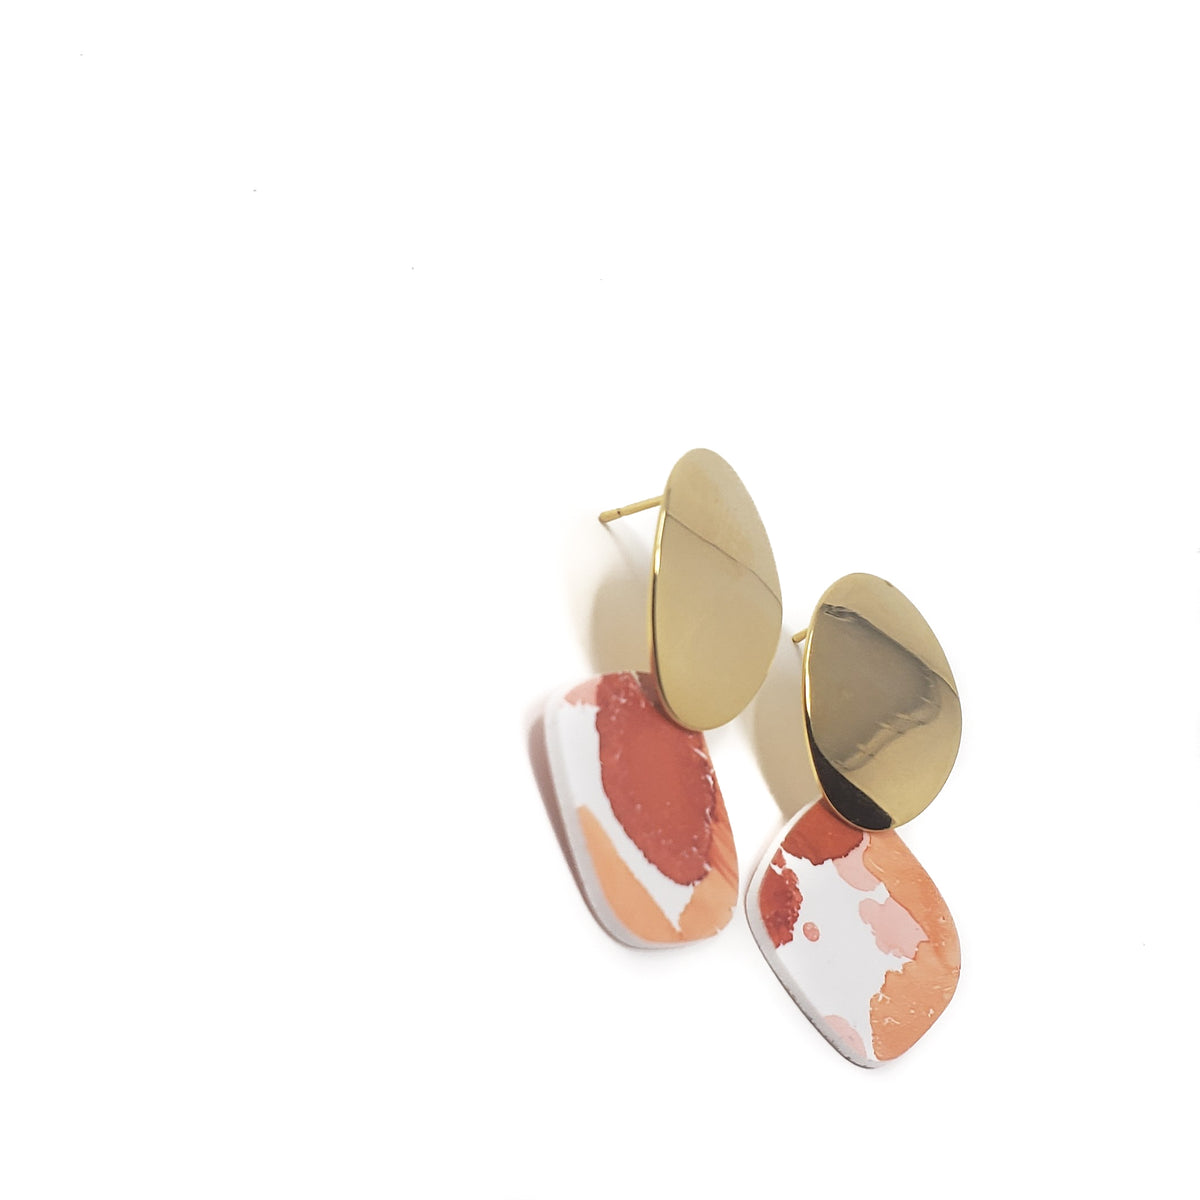 Calanthe earring